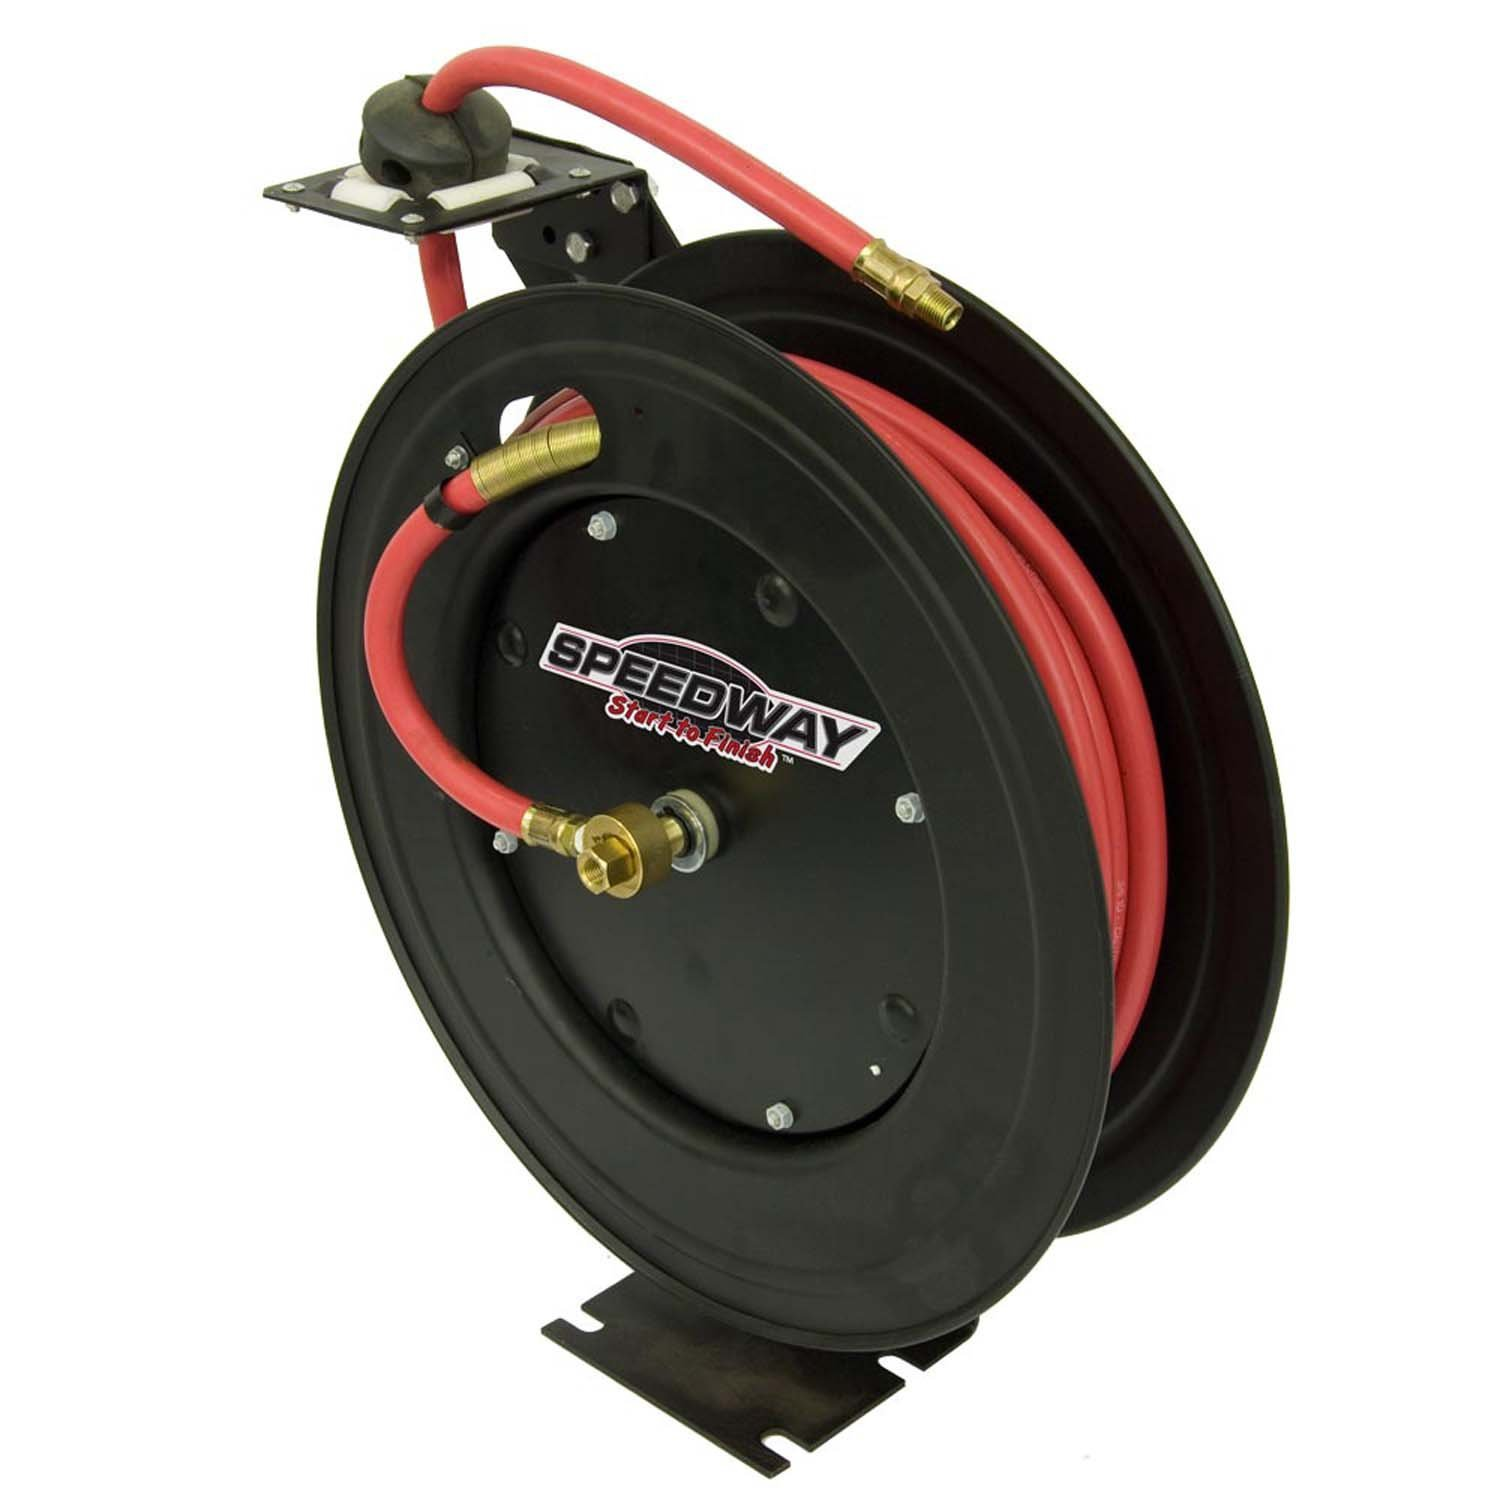 Speedway 7640 Retractable Air Hose Reel with 3/8-Inch by 50-Foot Hose